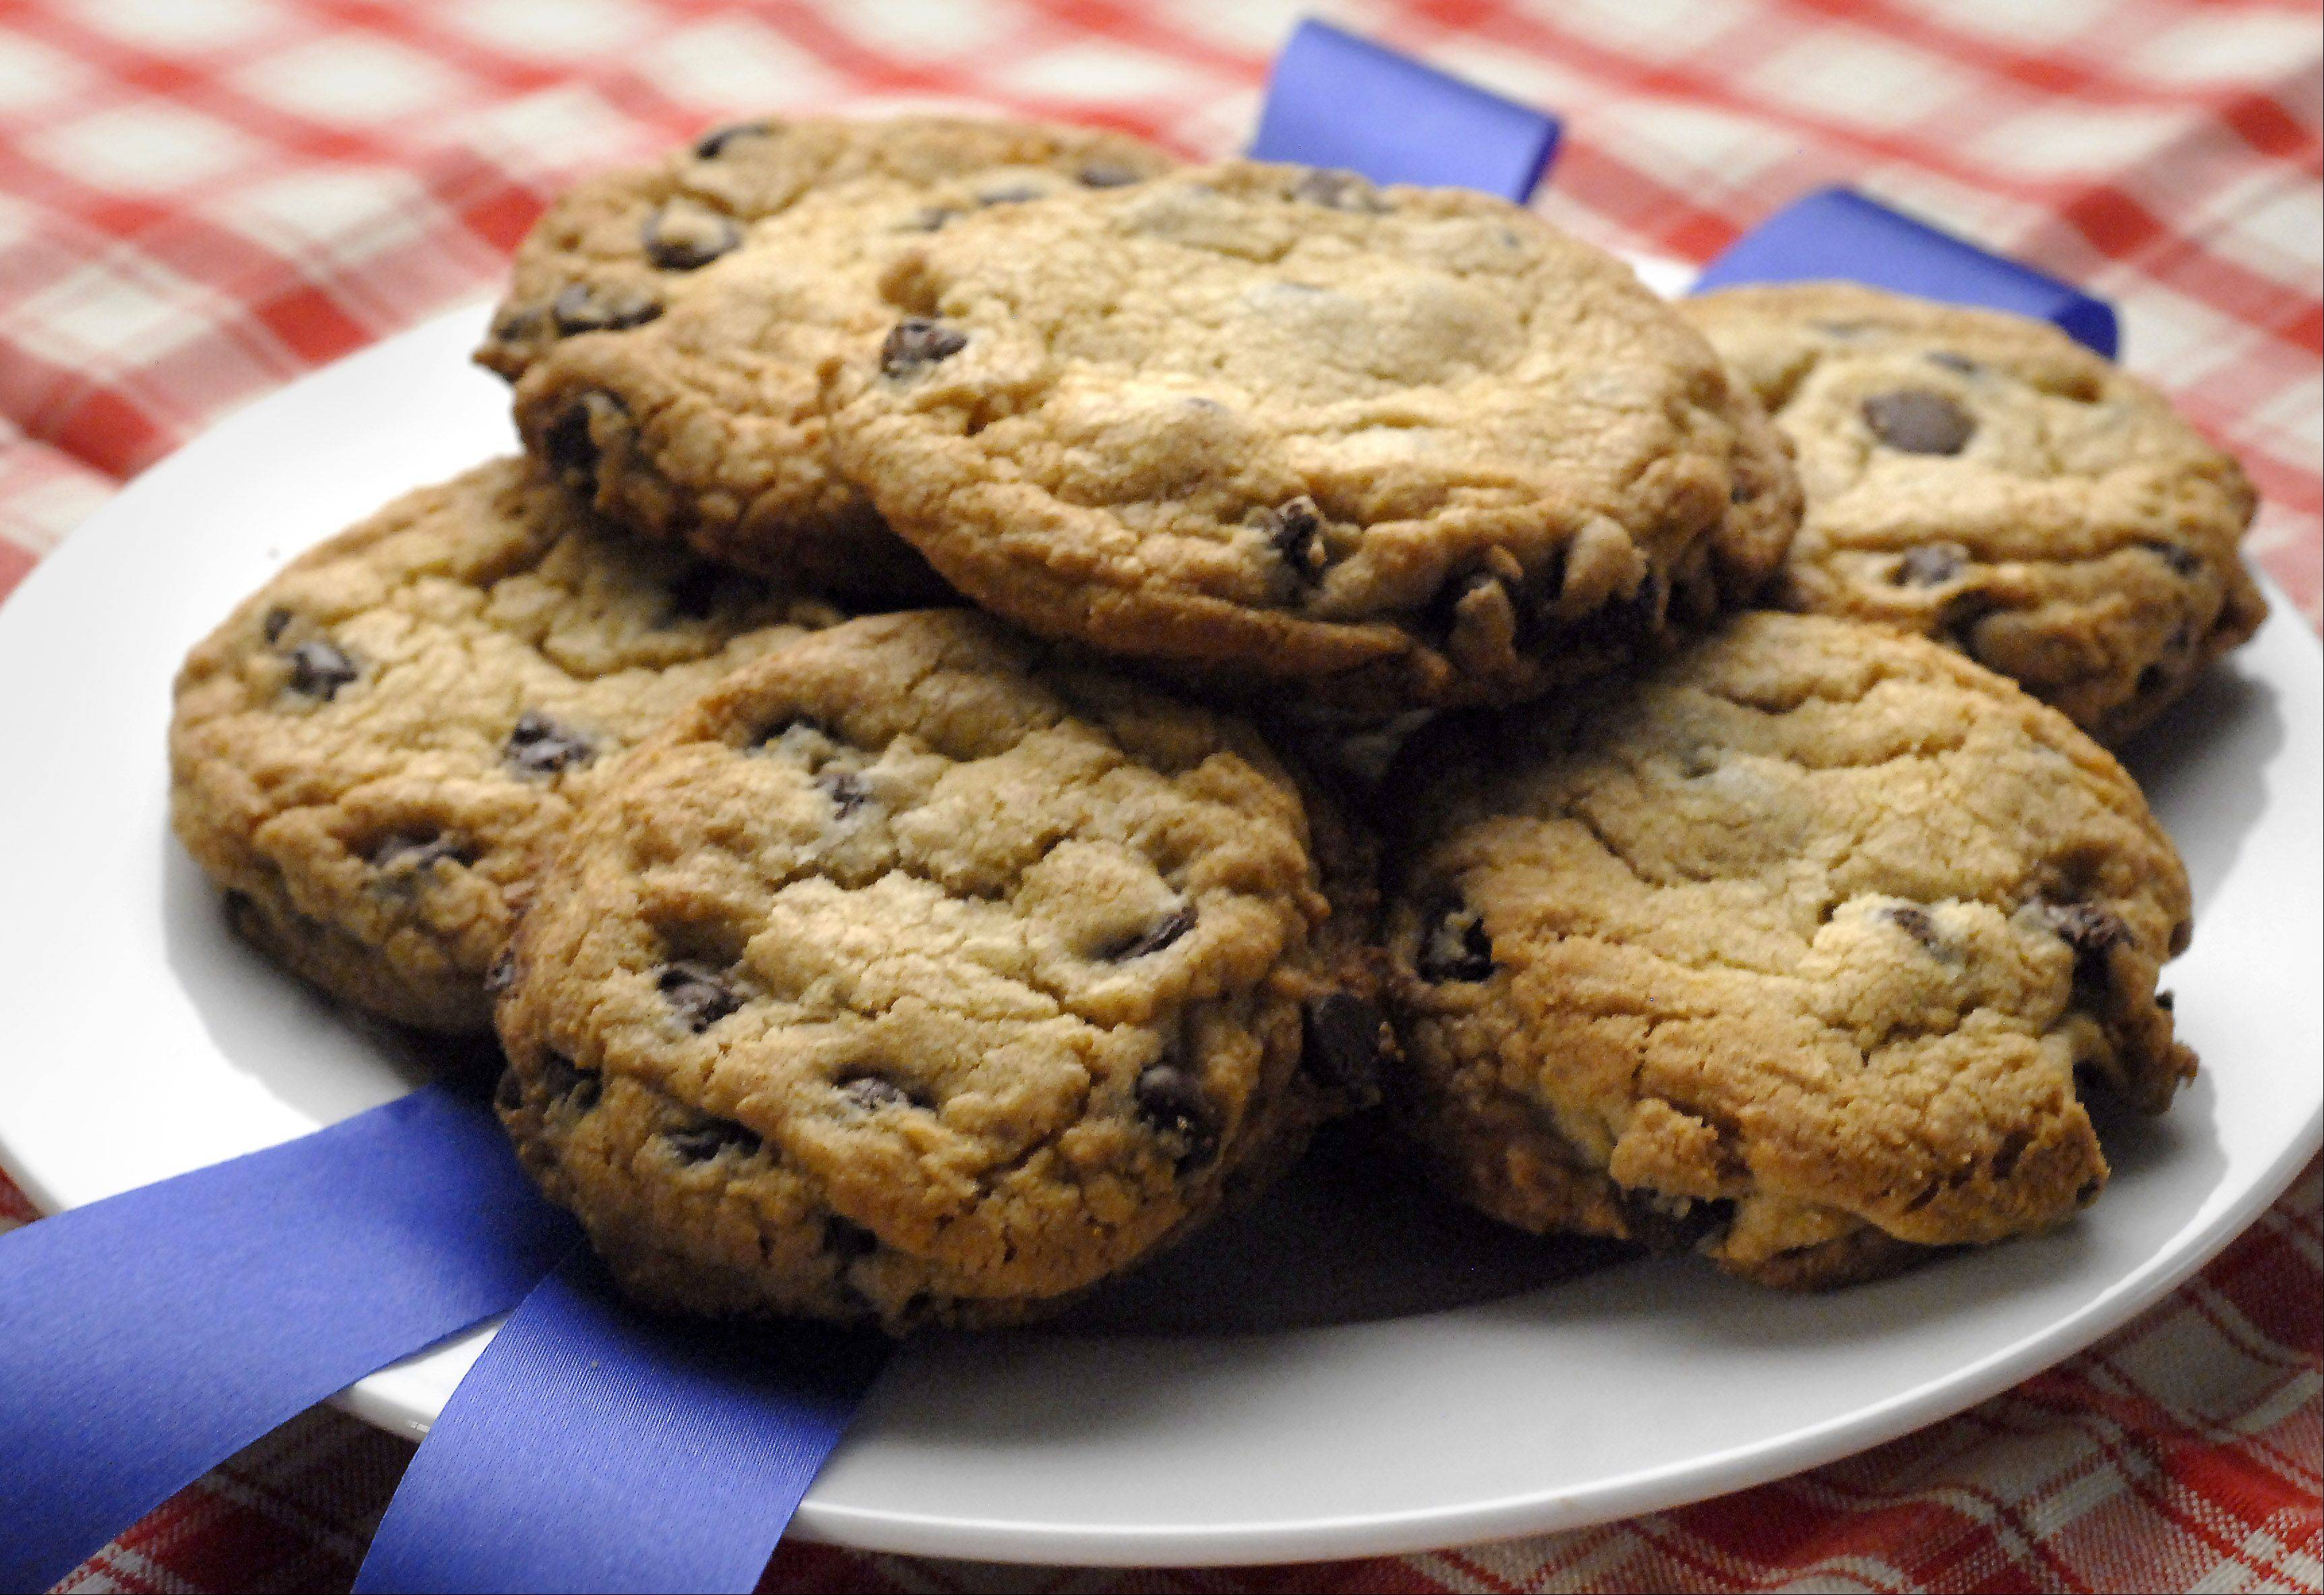 Batavia Cares is seeking bakers willing to send a batch of cookies every month to troops stationed overseas, including those in Afghanistan.